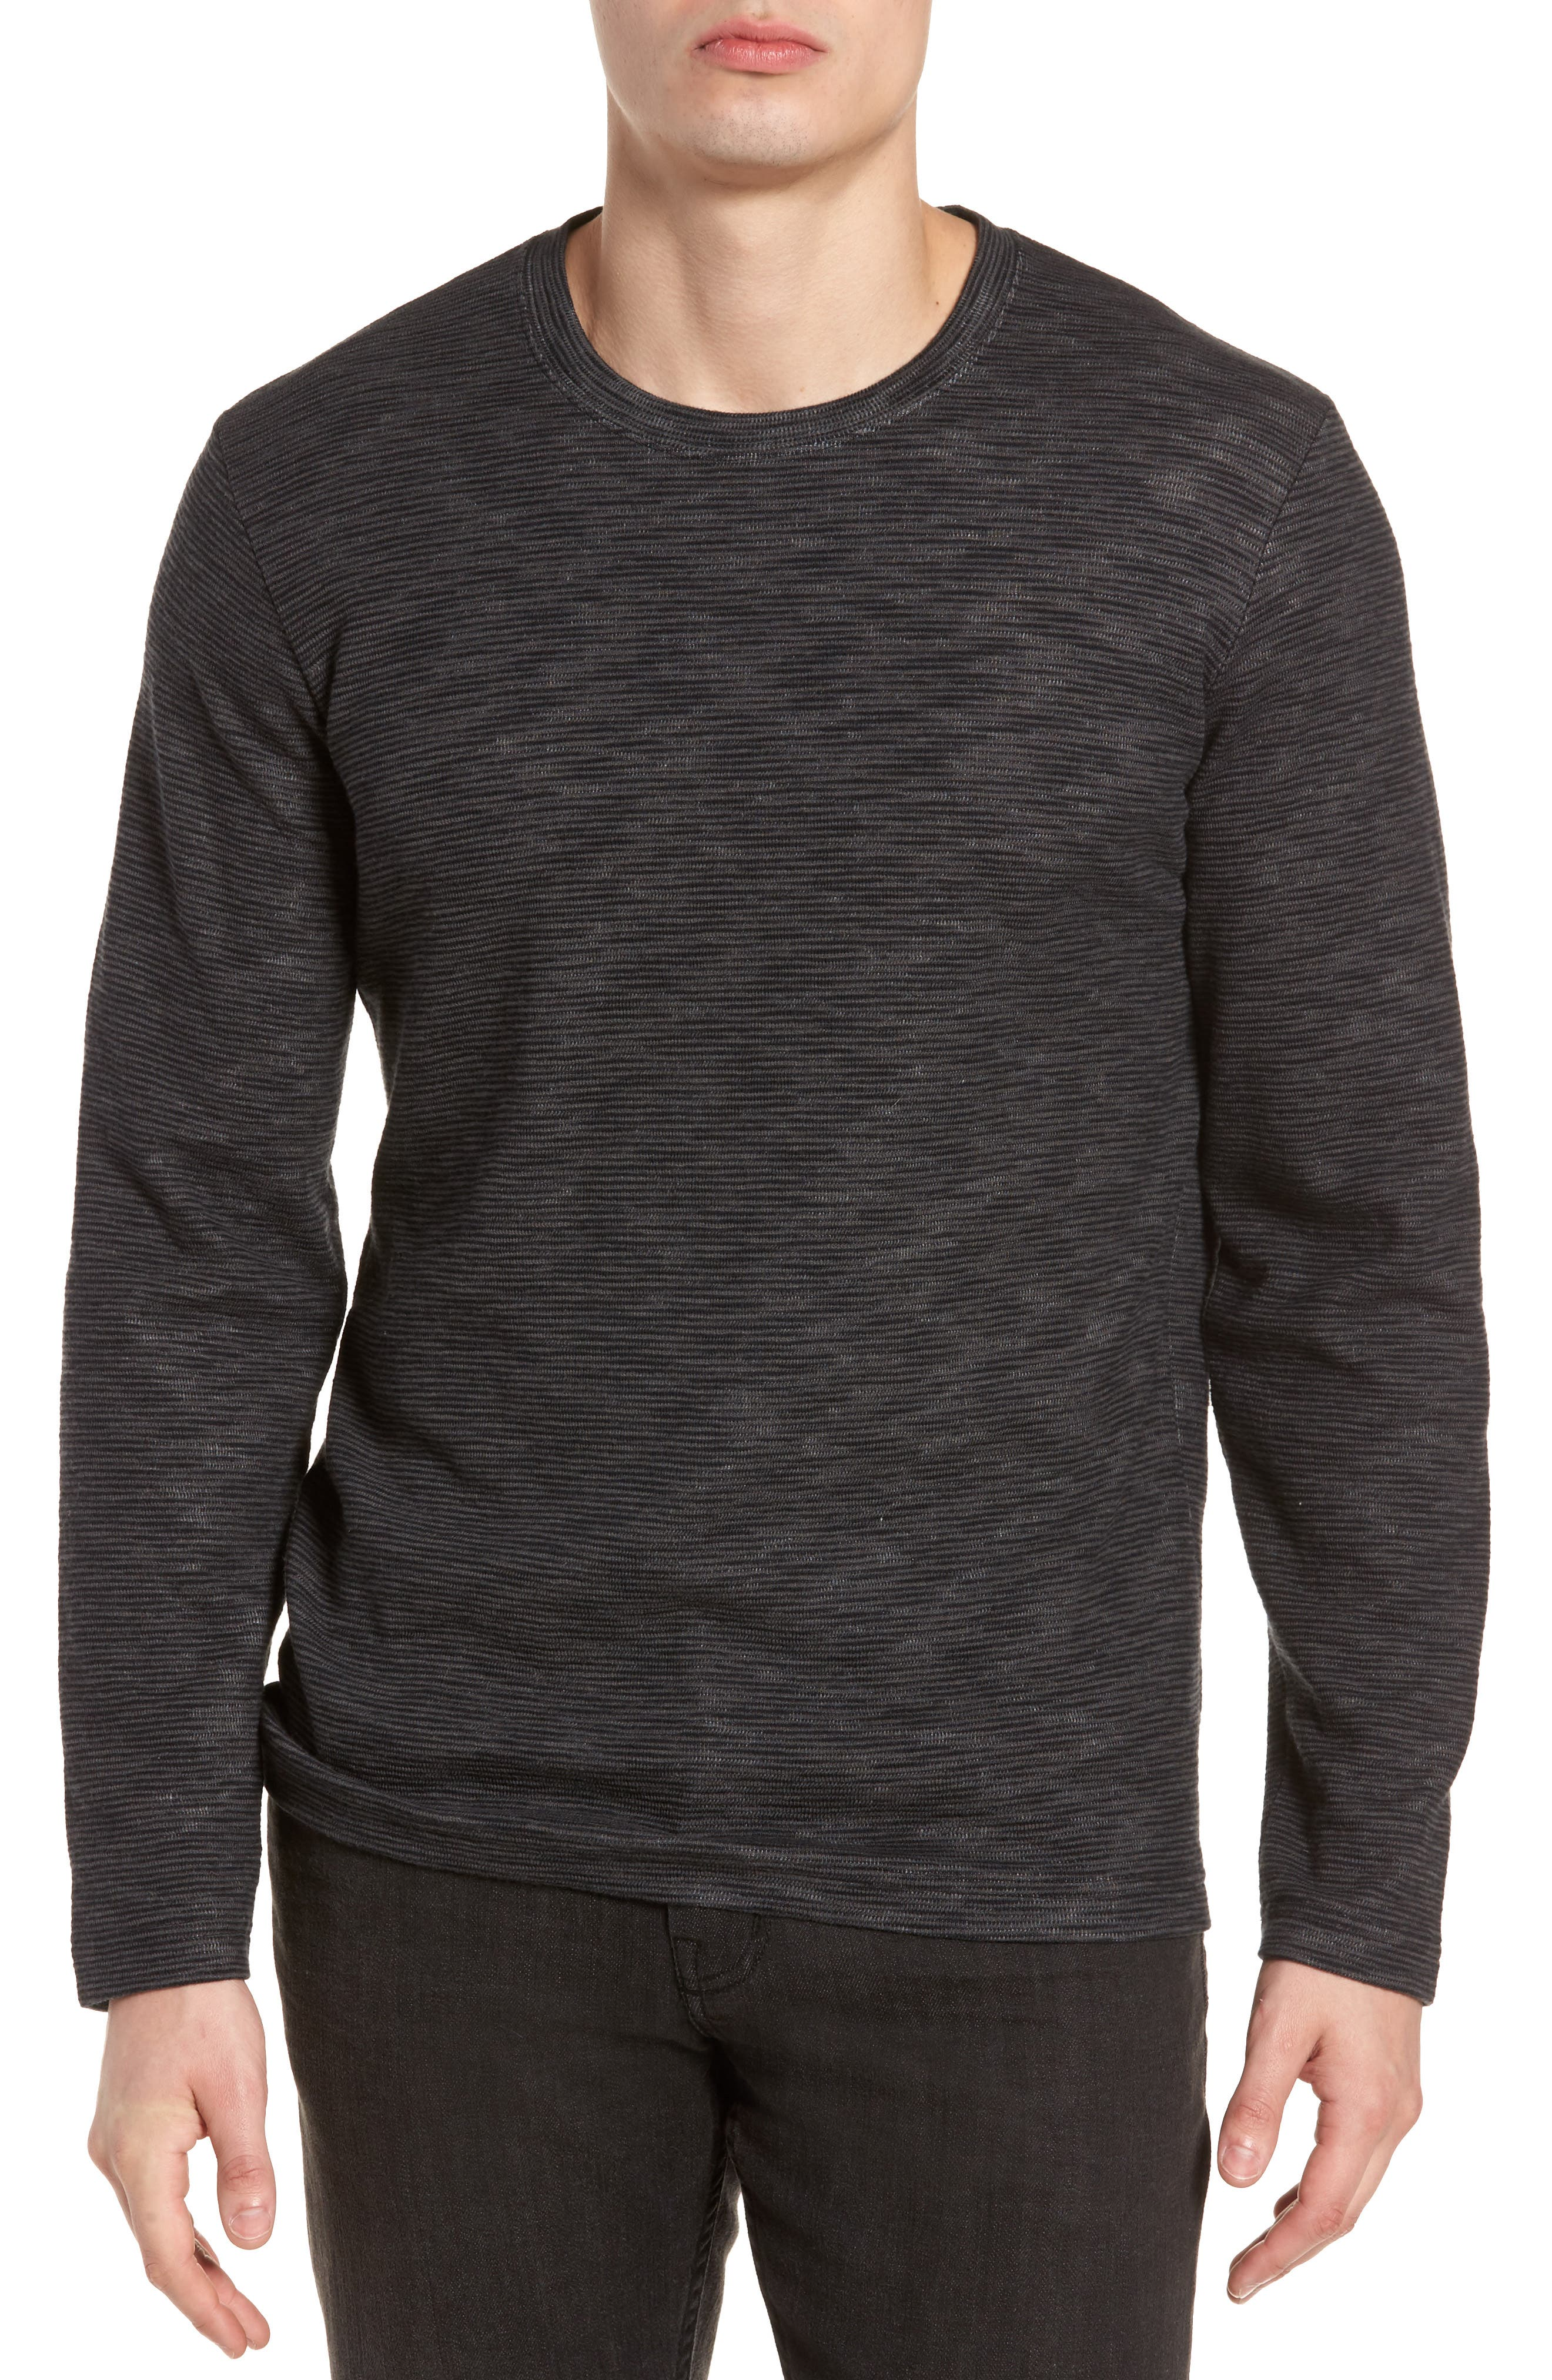 Digs Pullover,                         Main,                         color, Black/ Grey Pinstripe